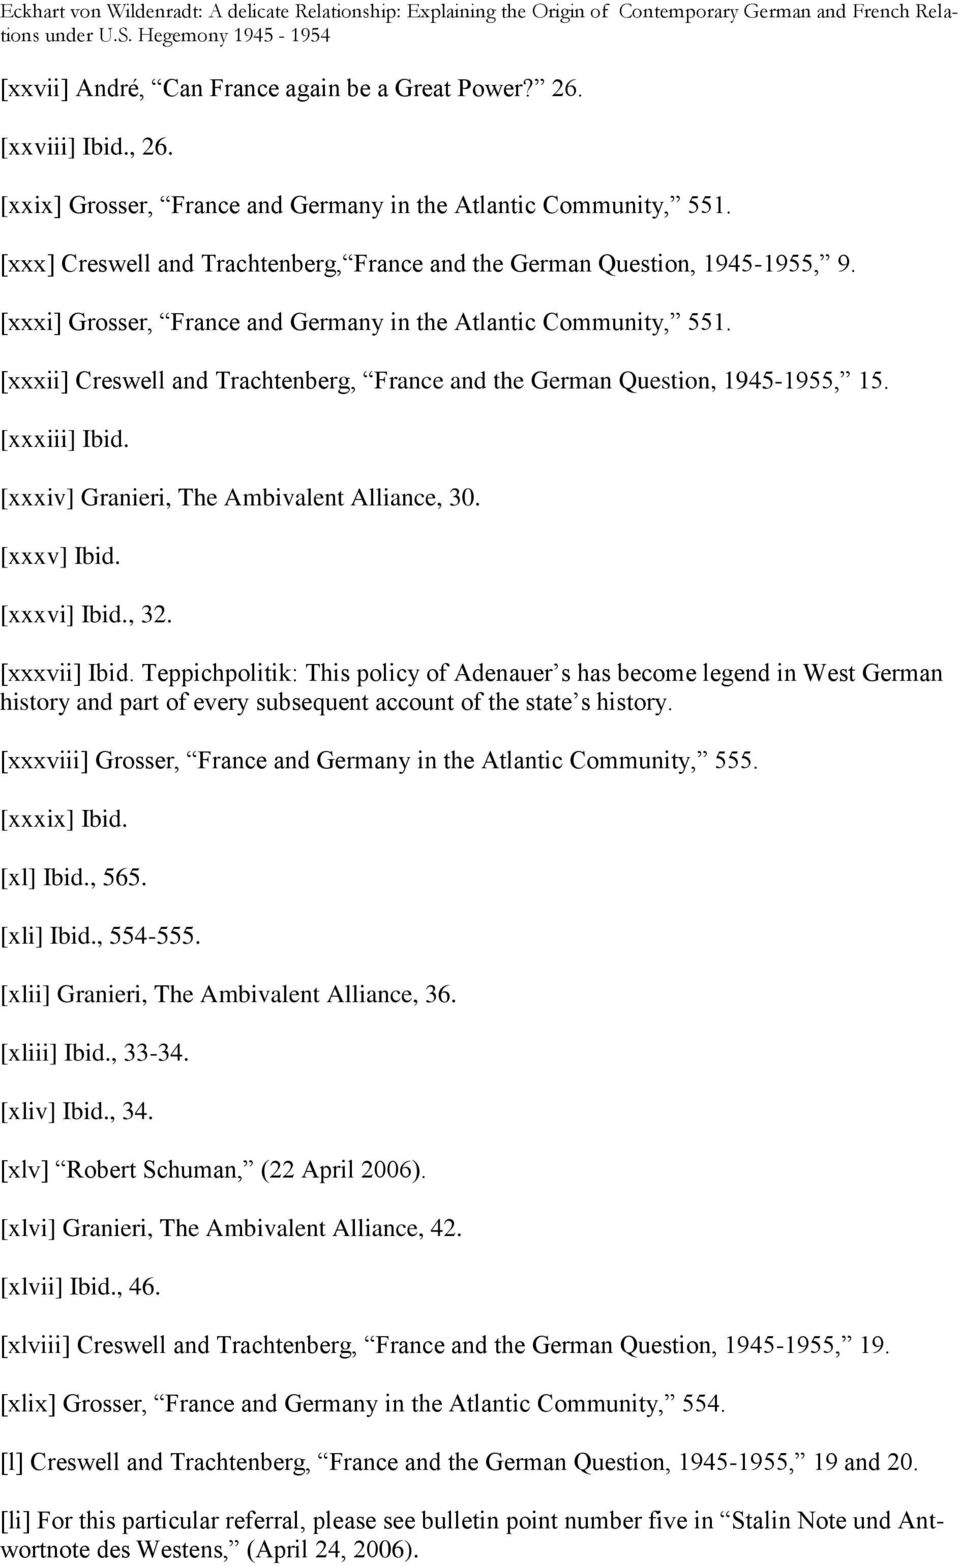 [xxxii] Creswell and Trachtenberg, France and the German Question, 1945-1955, 15. [xxxiii] Ibid. [xxxiv] Granieri, The Ambivalent Alliance, 30. [xxxv] Ibid. [xxxvi] Ibid., 32. [xxxvii] Ibid.